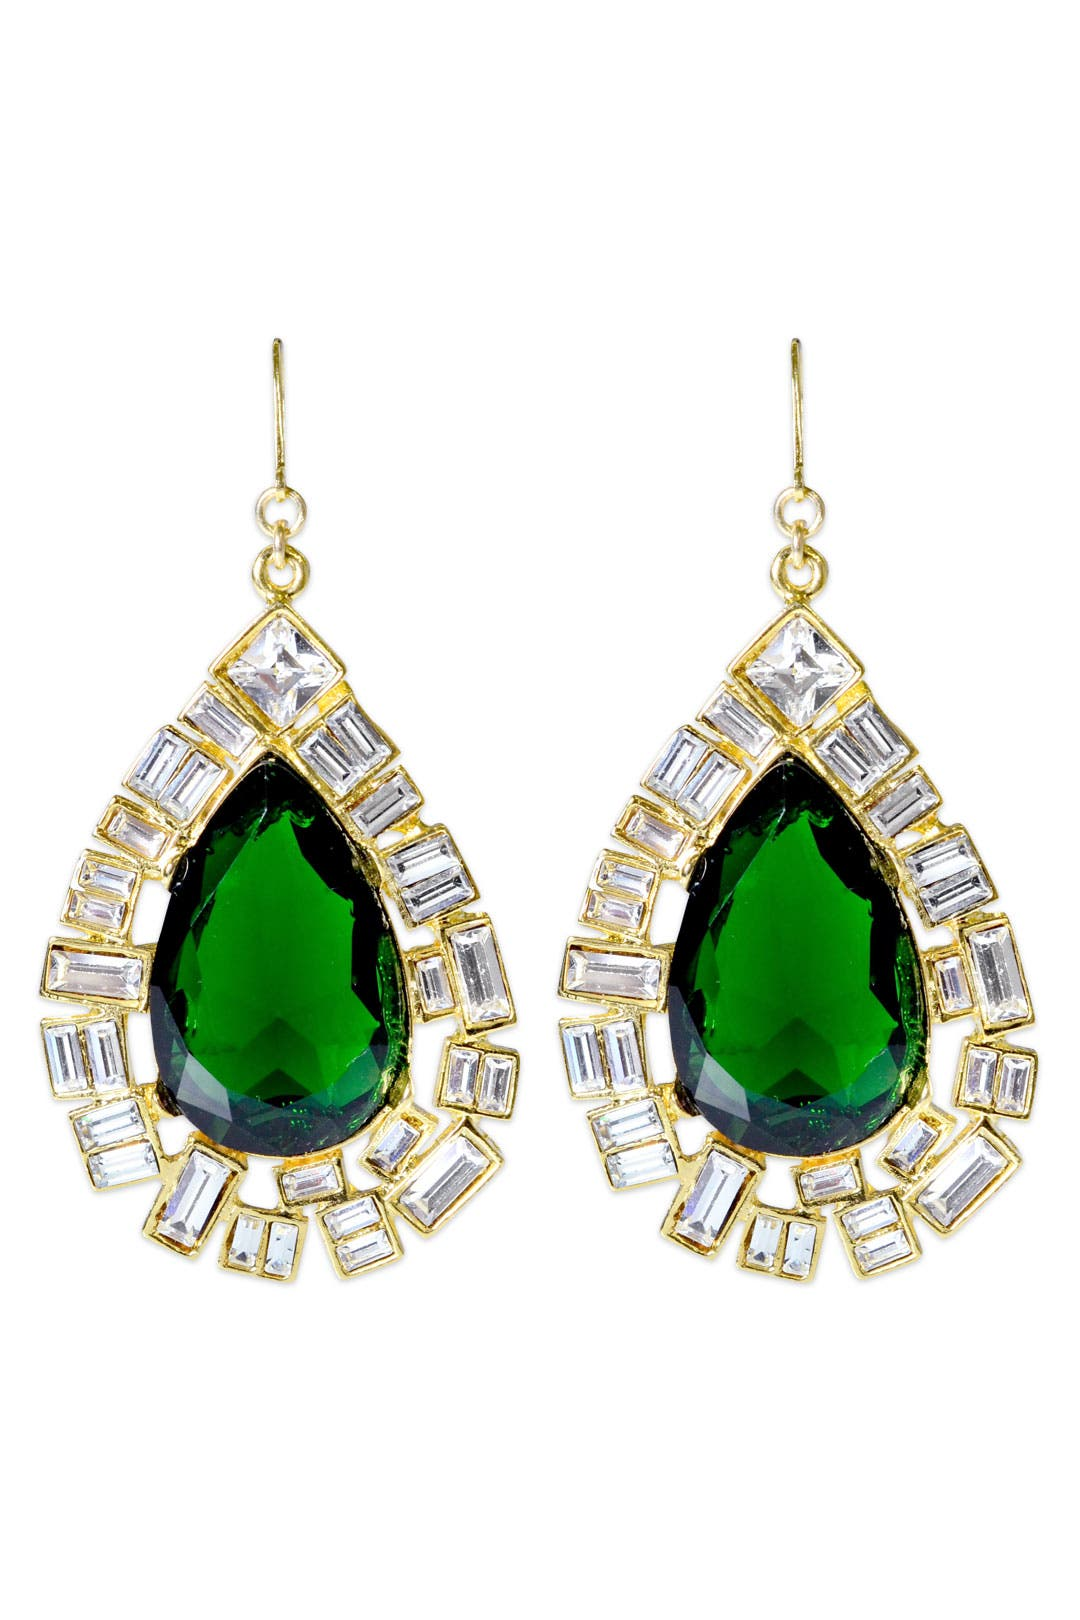 Iconic Emerald Drops by Kenneth Jay Lane